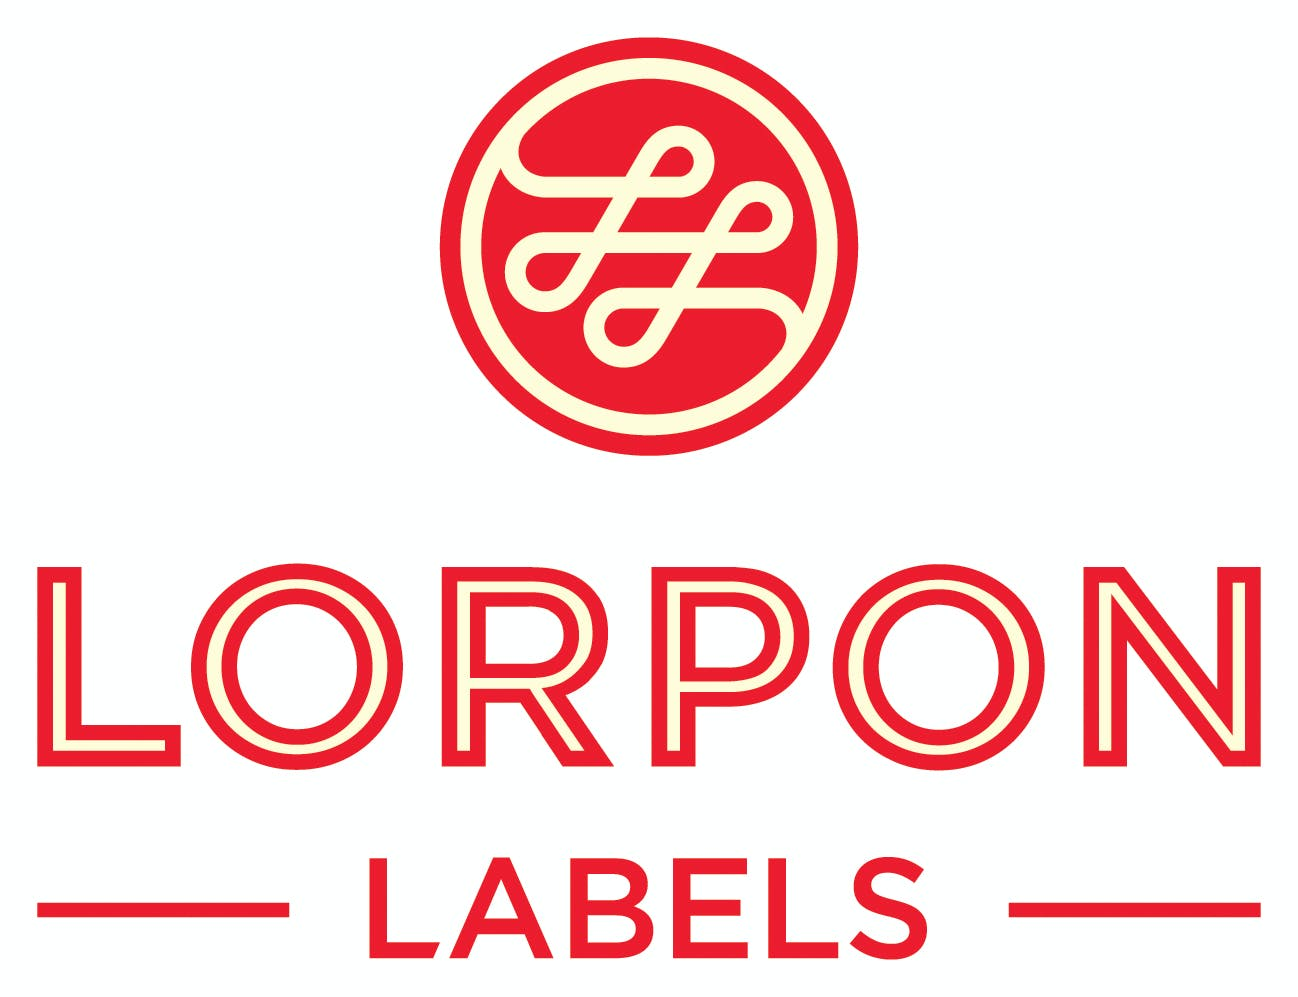 Lorpon Labels